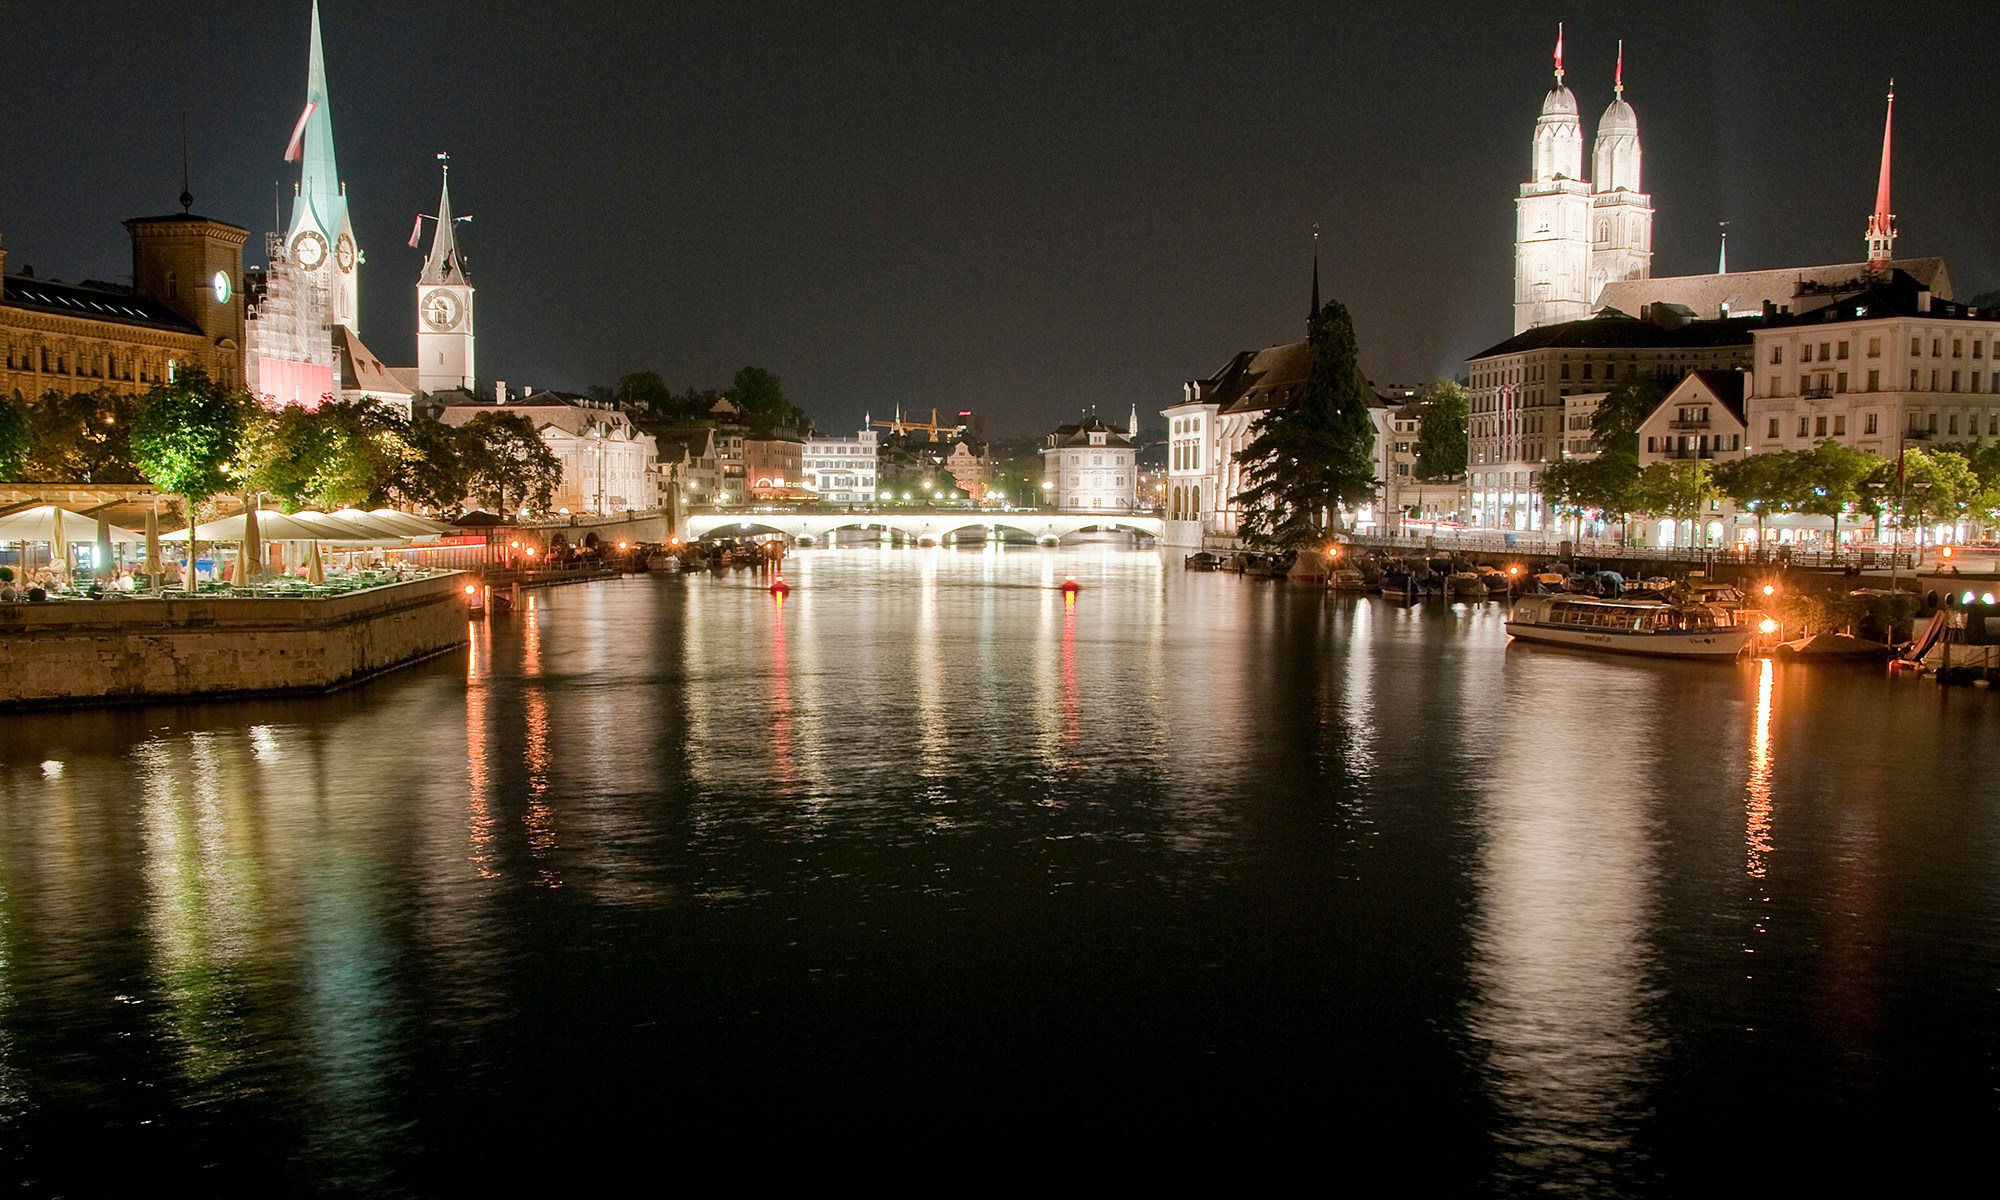 Limmat River at Night, Zurich, Switzerland